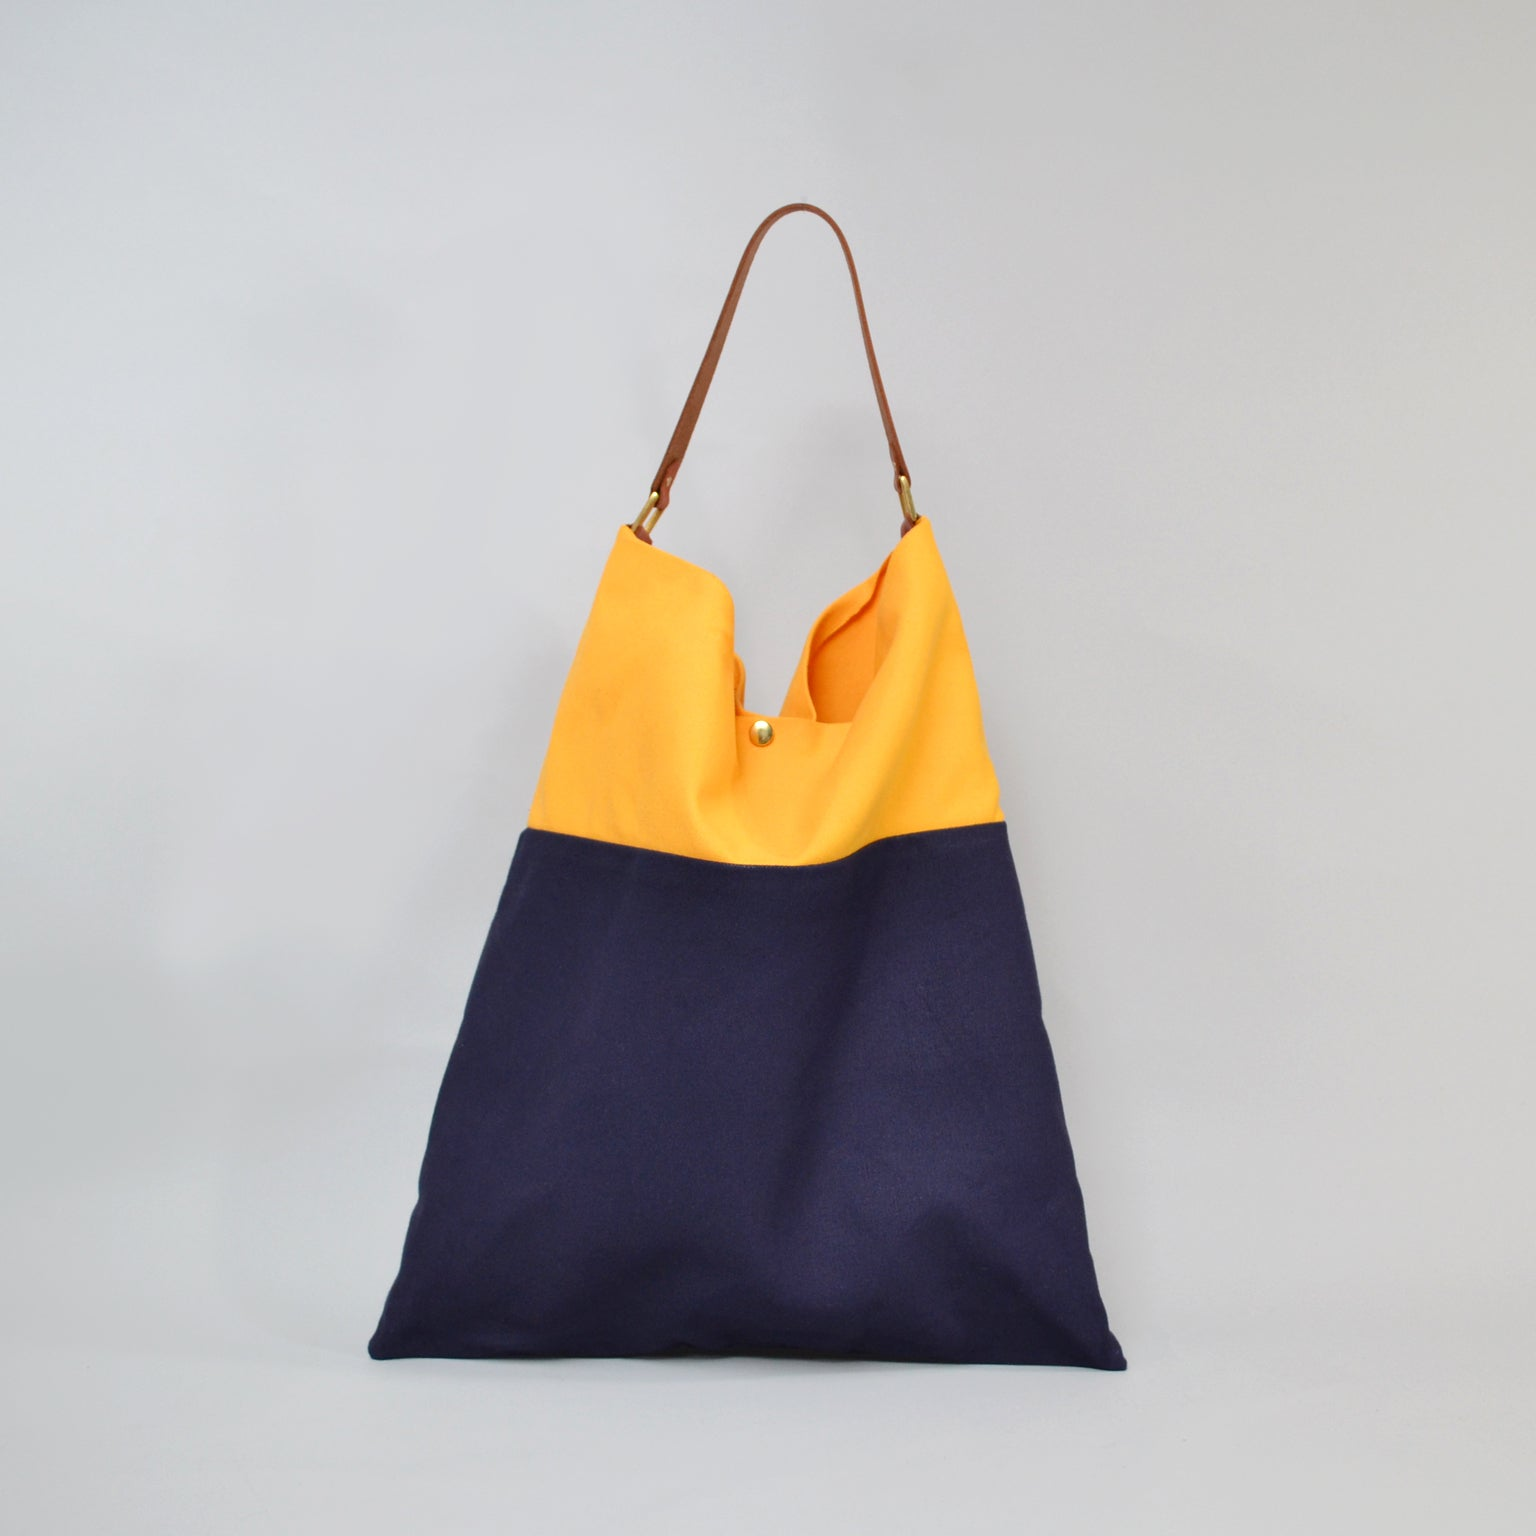 TESS Tote Bag<br> Yellow & Navy